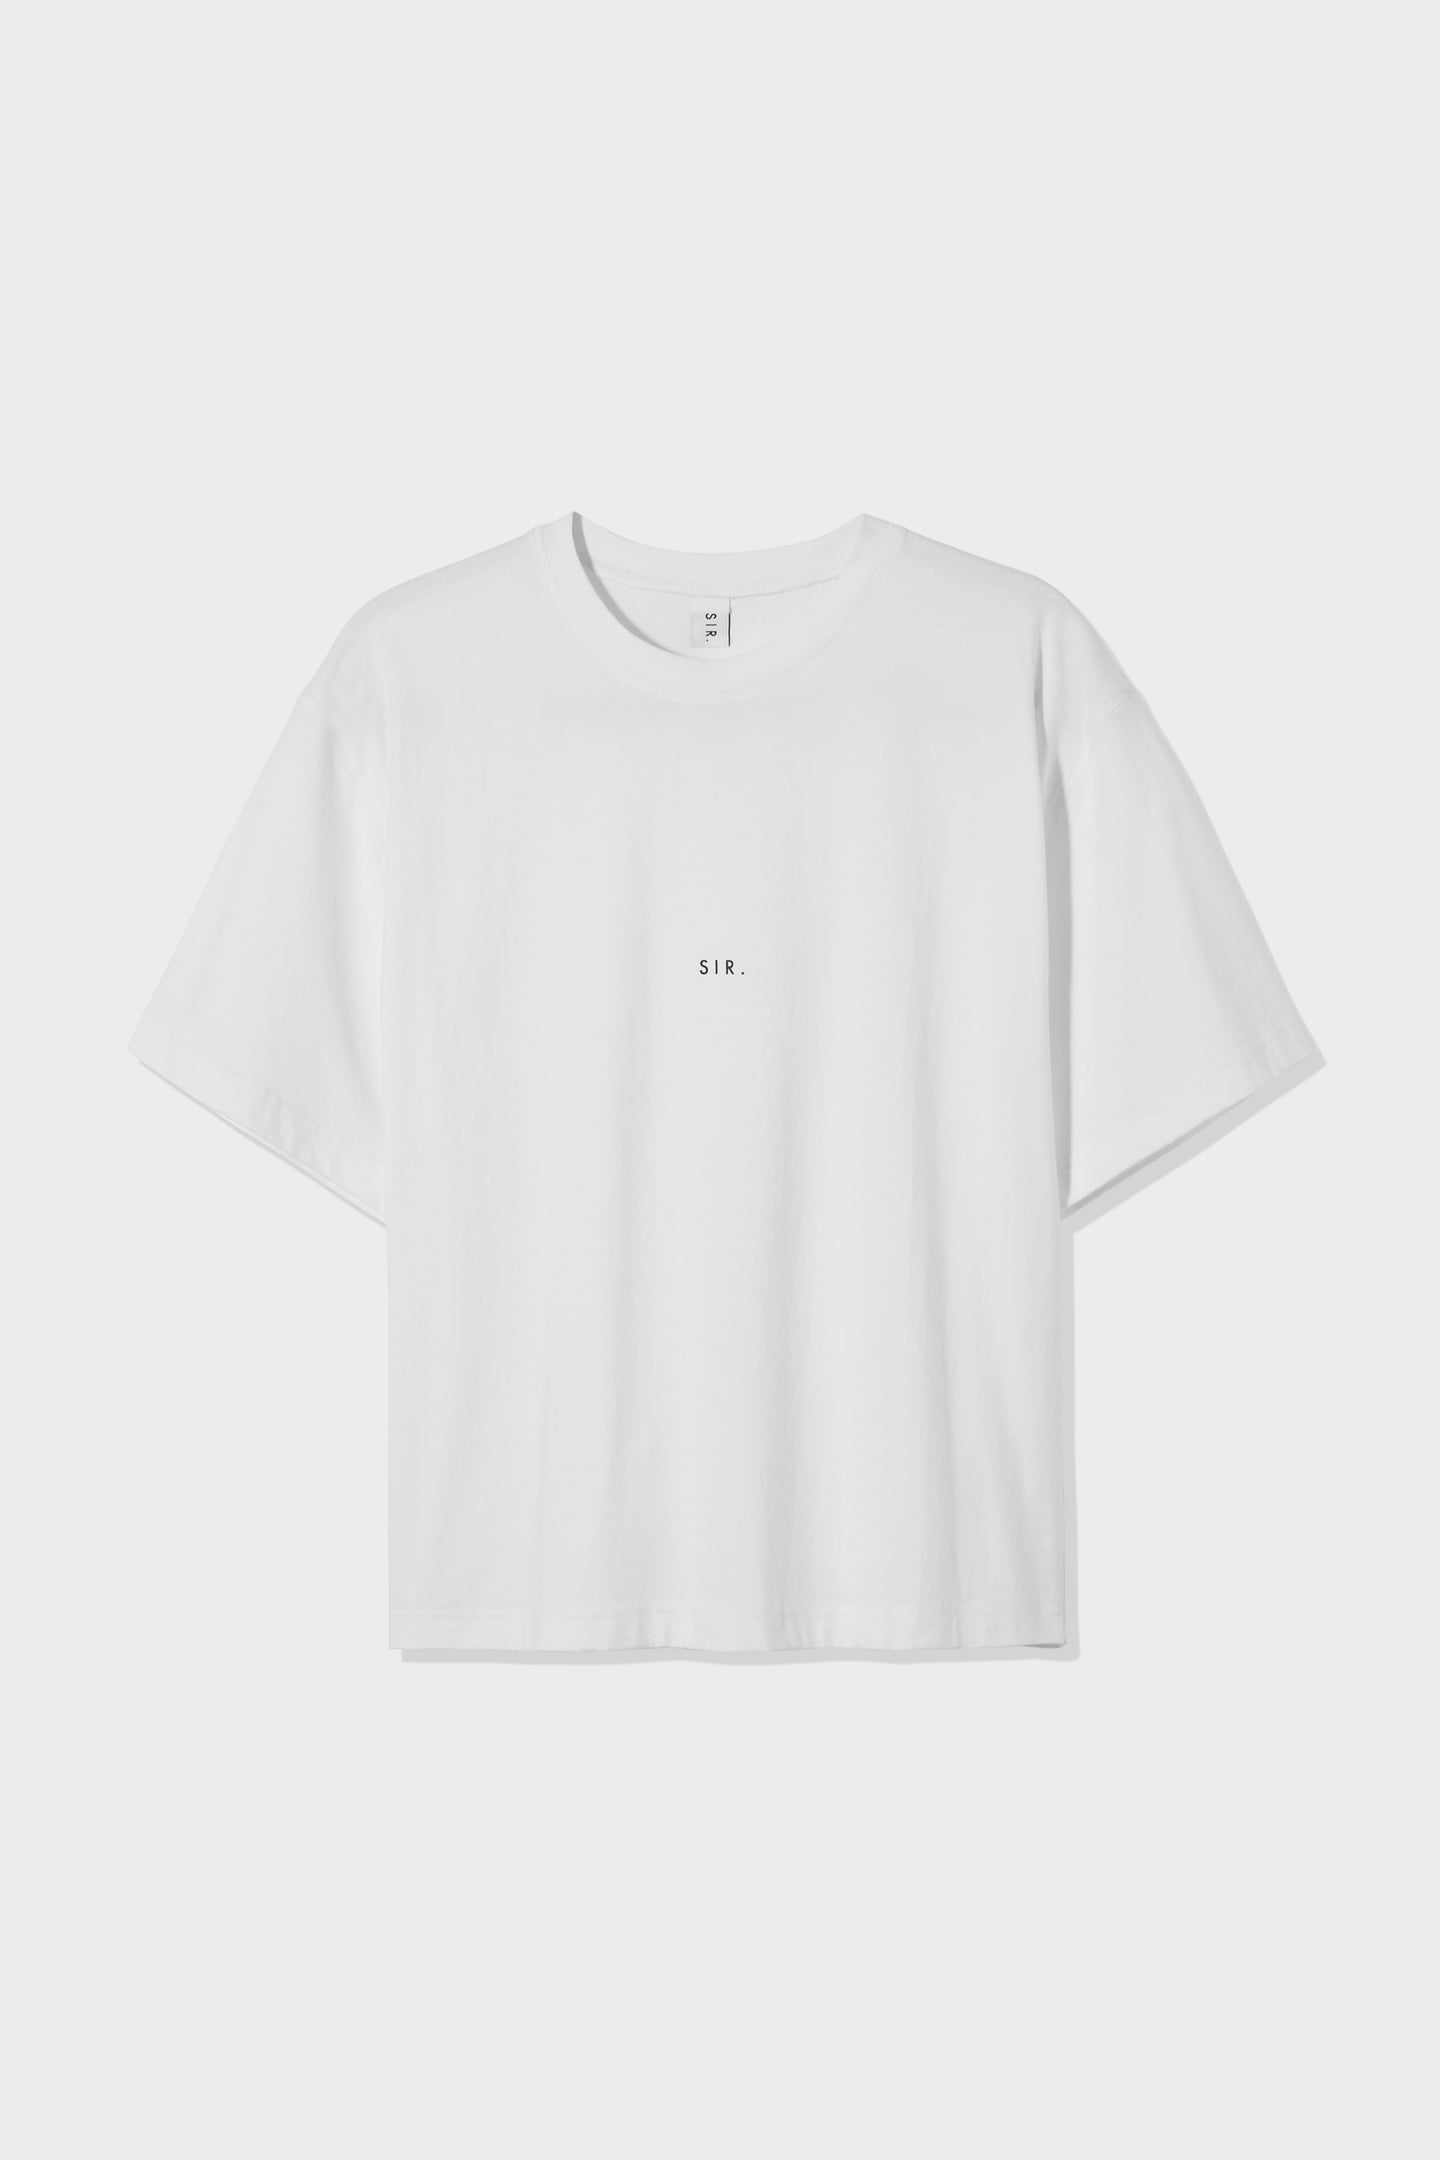 SIR the label WOMENS OVERSIZED TEE WHITE